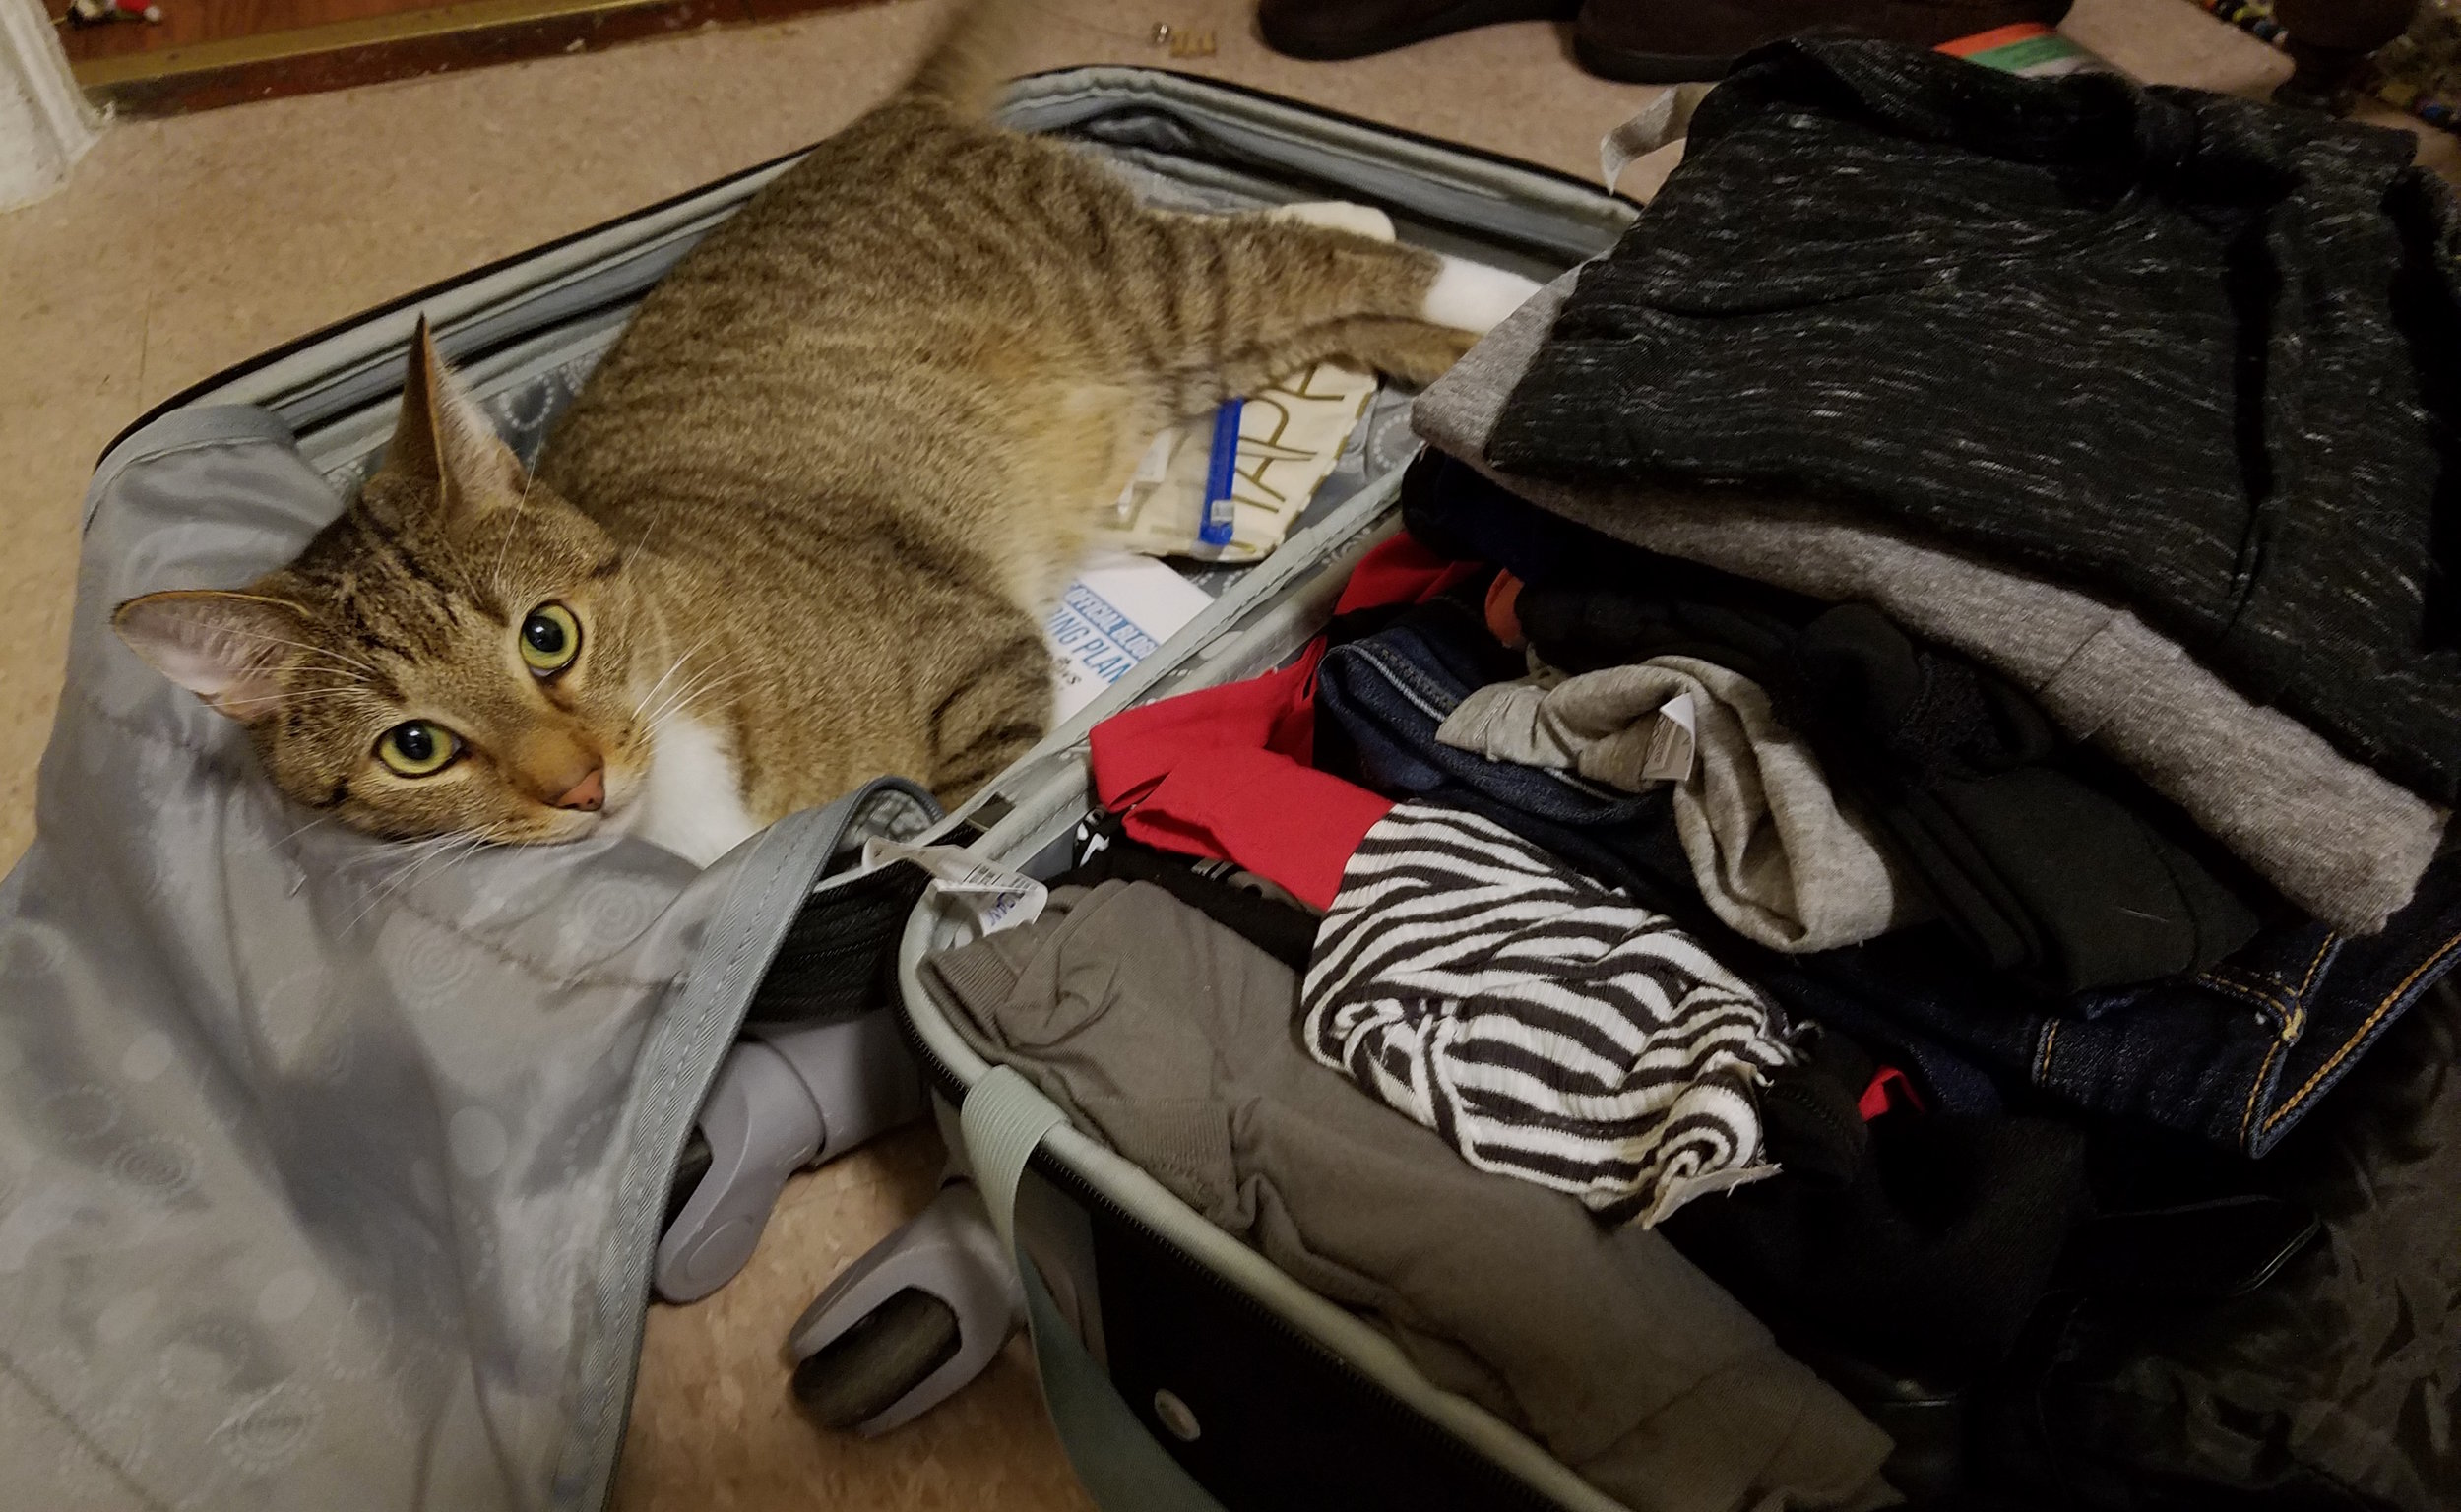 When I returned home, Thomas quickly figured out which side of the suitcase I put all the catnip toys in...